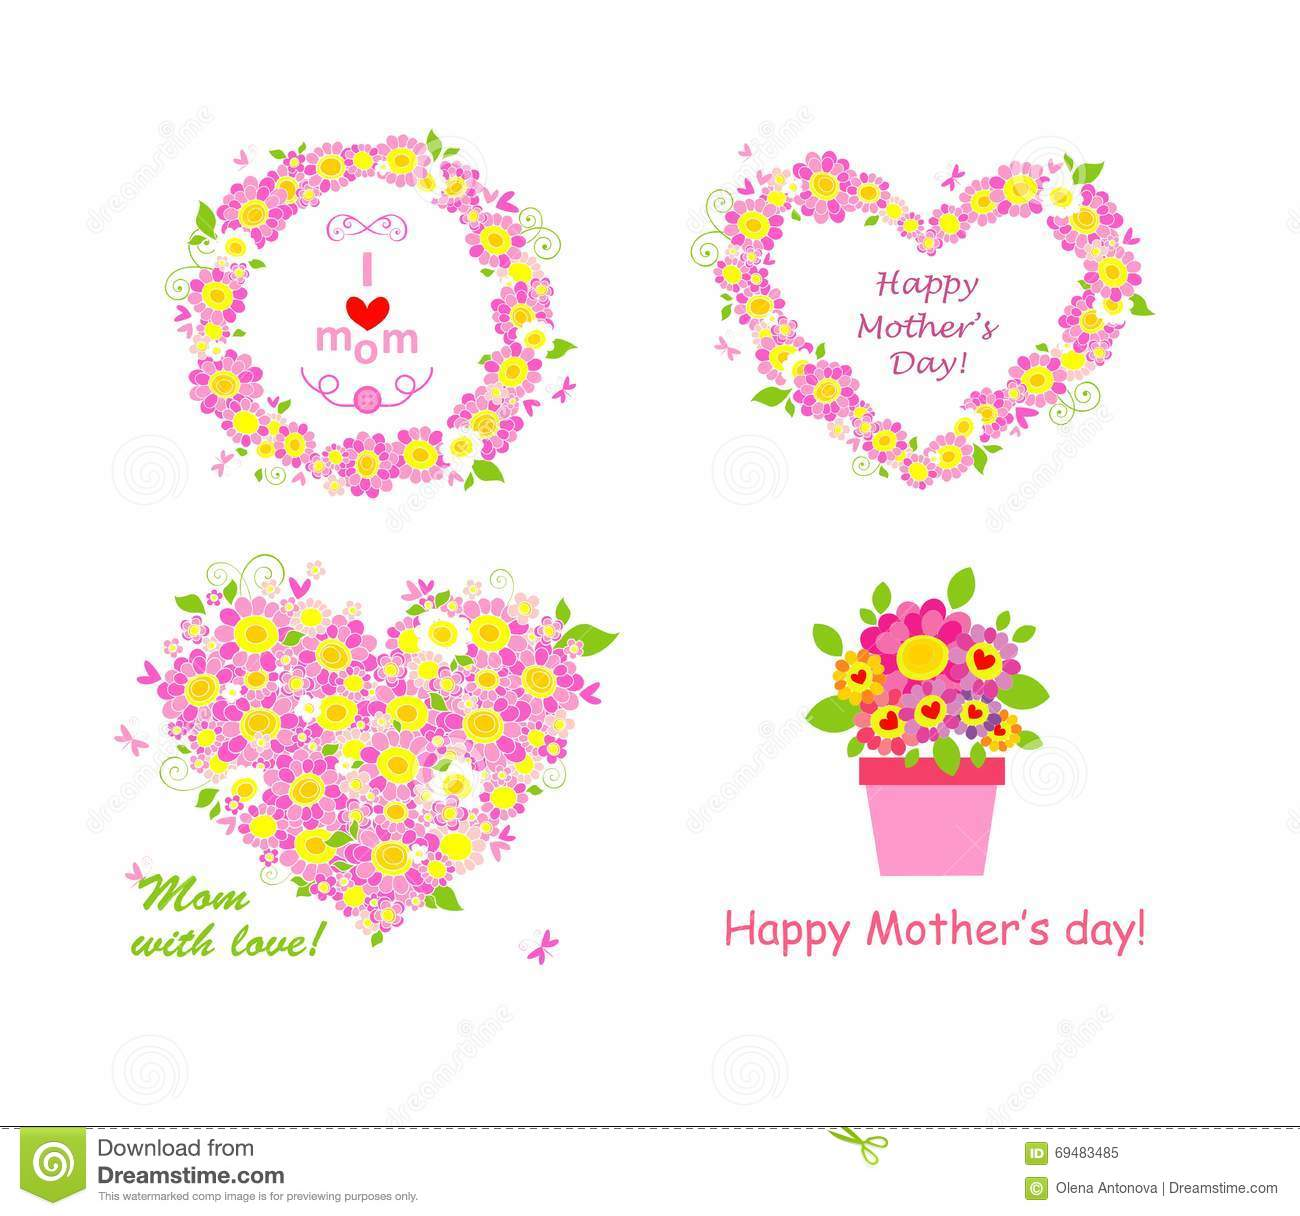 Greetings For Mom With Beautiful Pink And White Daisy Stock Vector